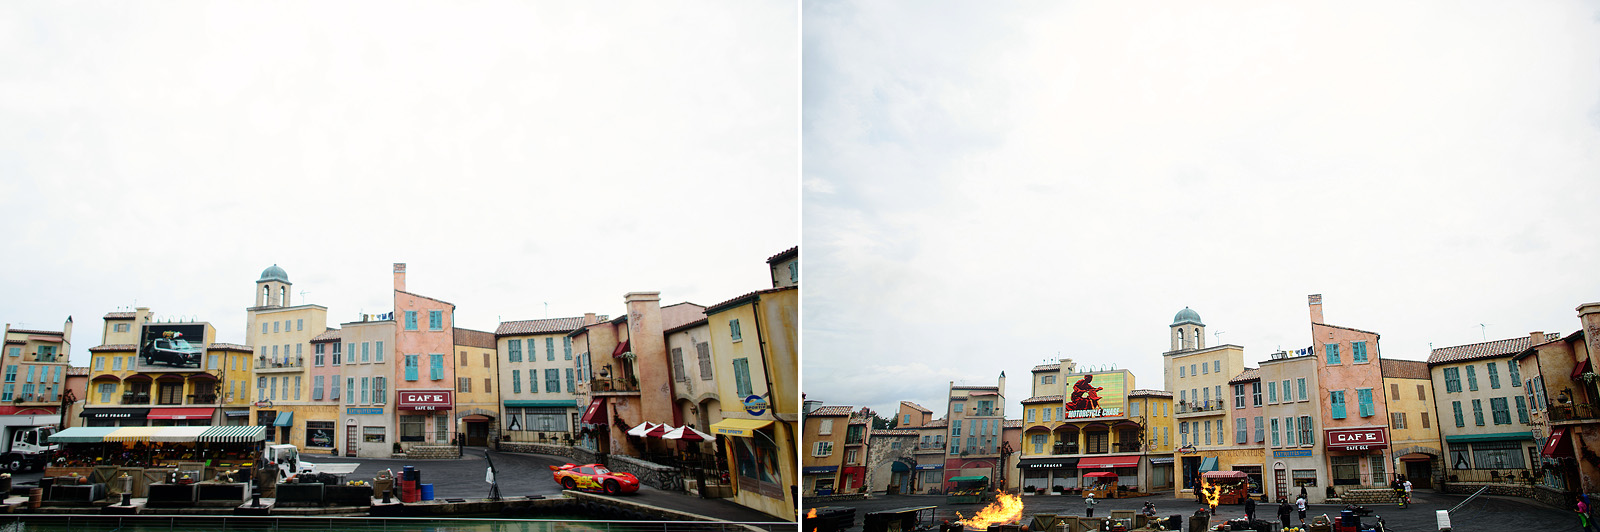 lightning mcqueen made an appearance at the stunt show hollywood studios